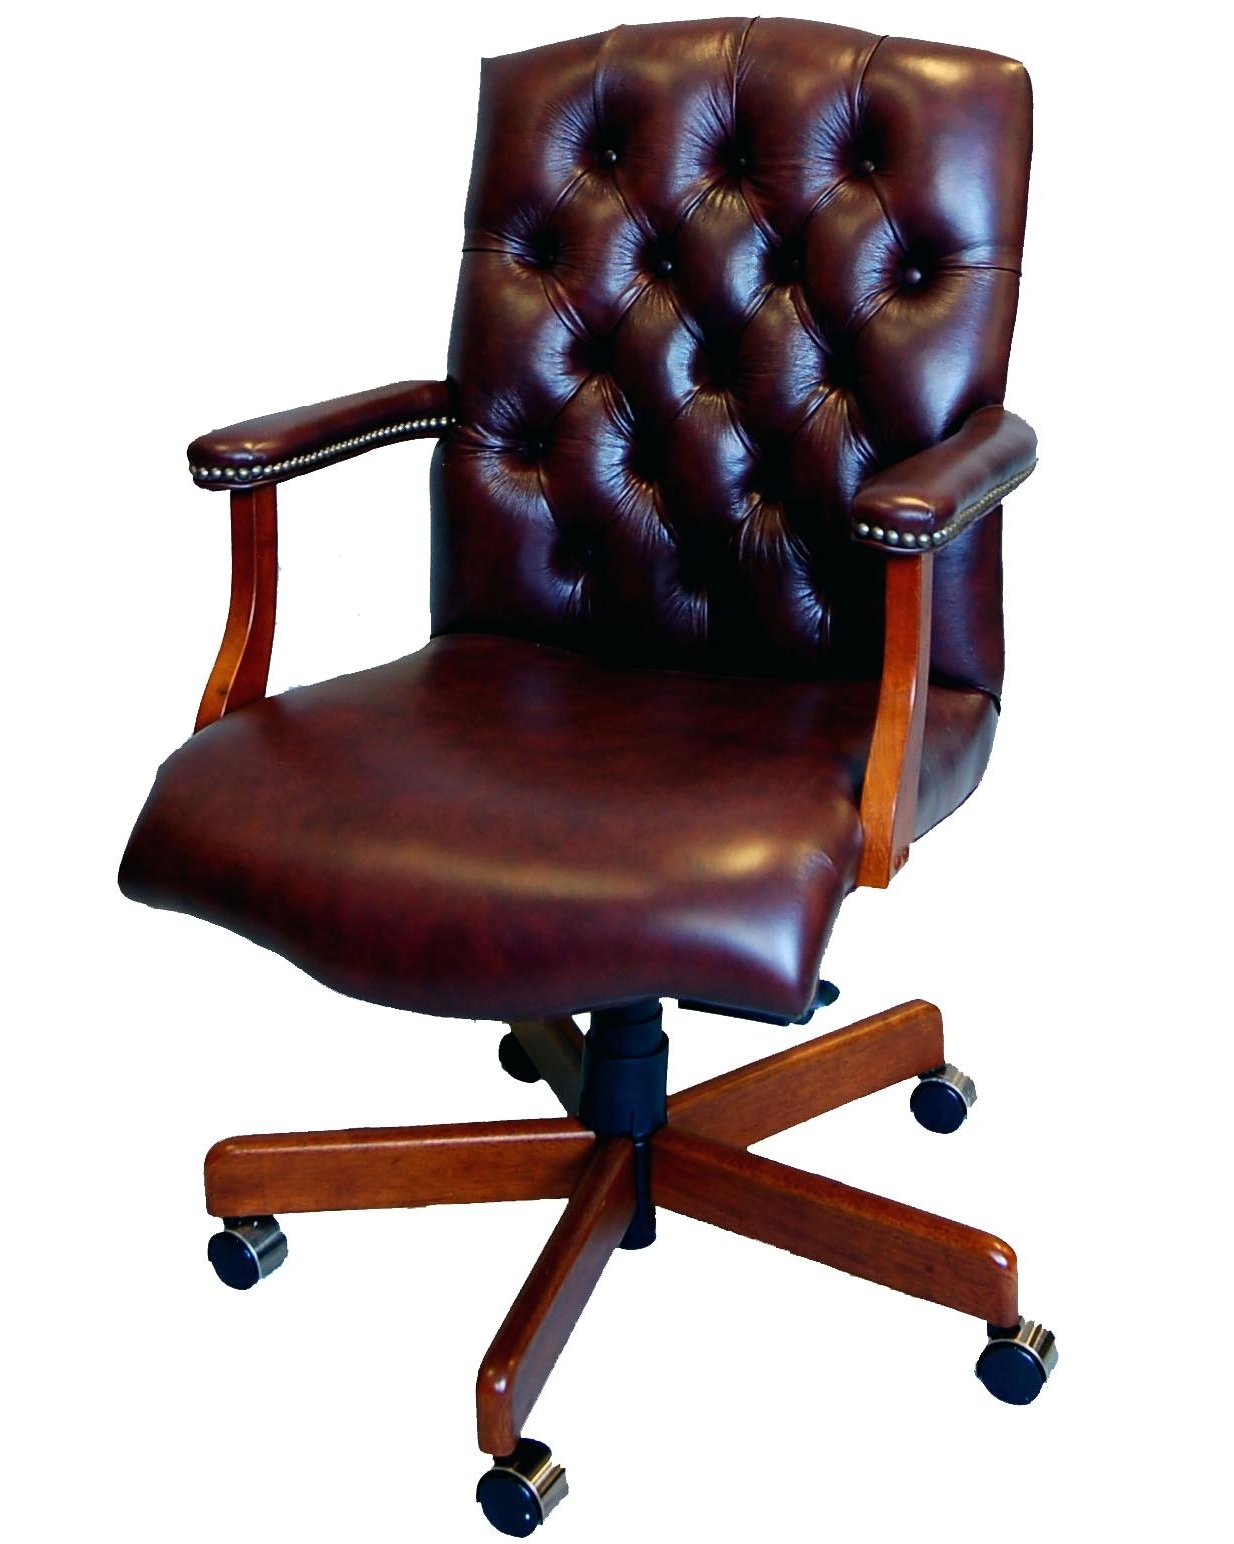 Preferred Articles With Verona Cream Executive Leather Office Chairs Label For Verona Cream Executive Leather Office Chairs (View 3 of 20)